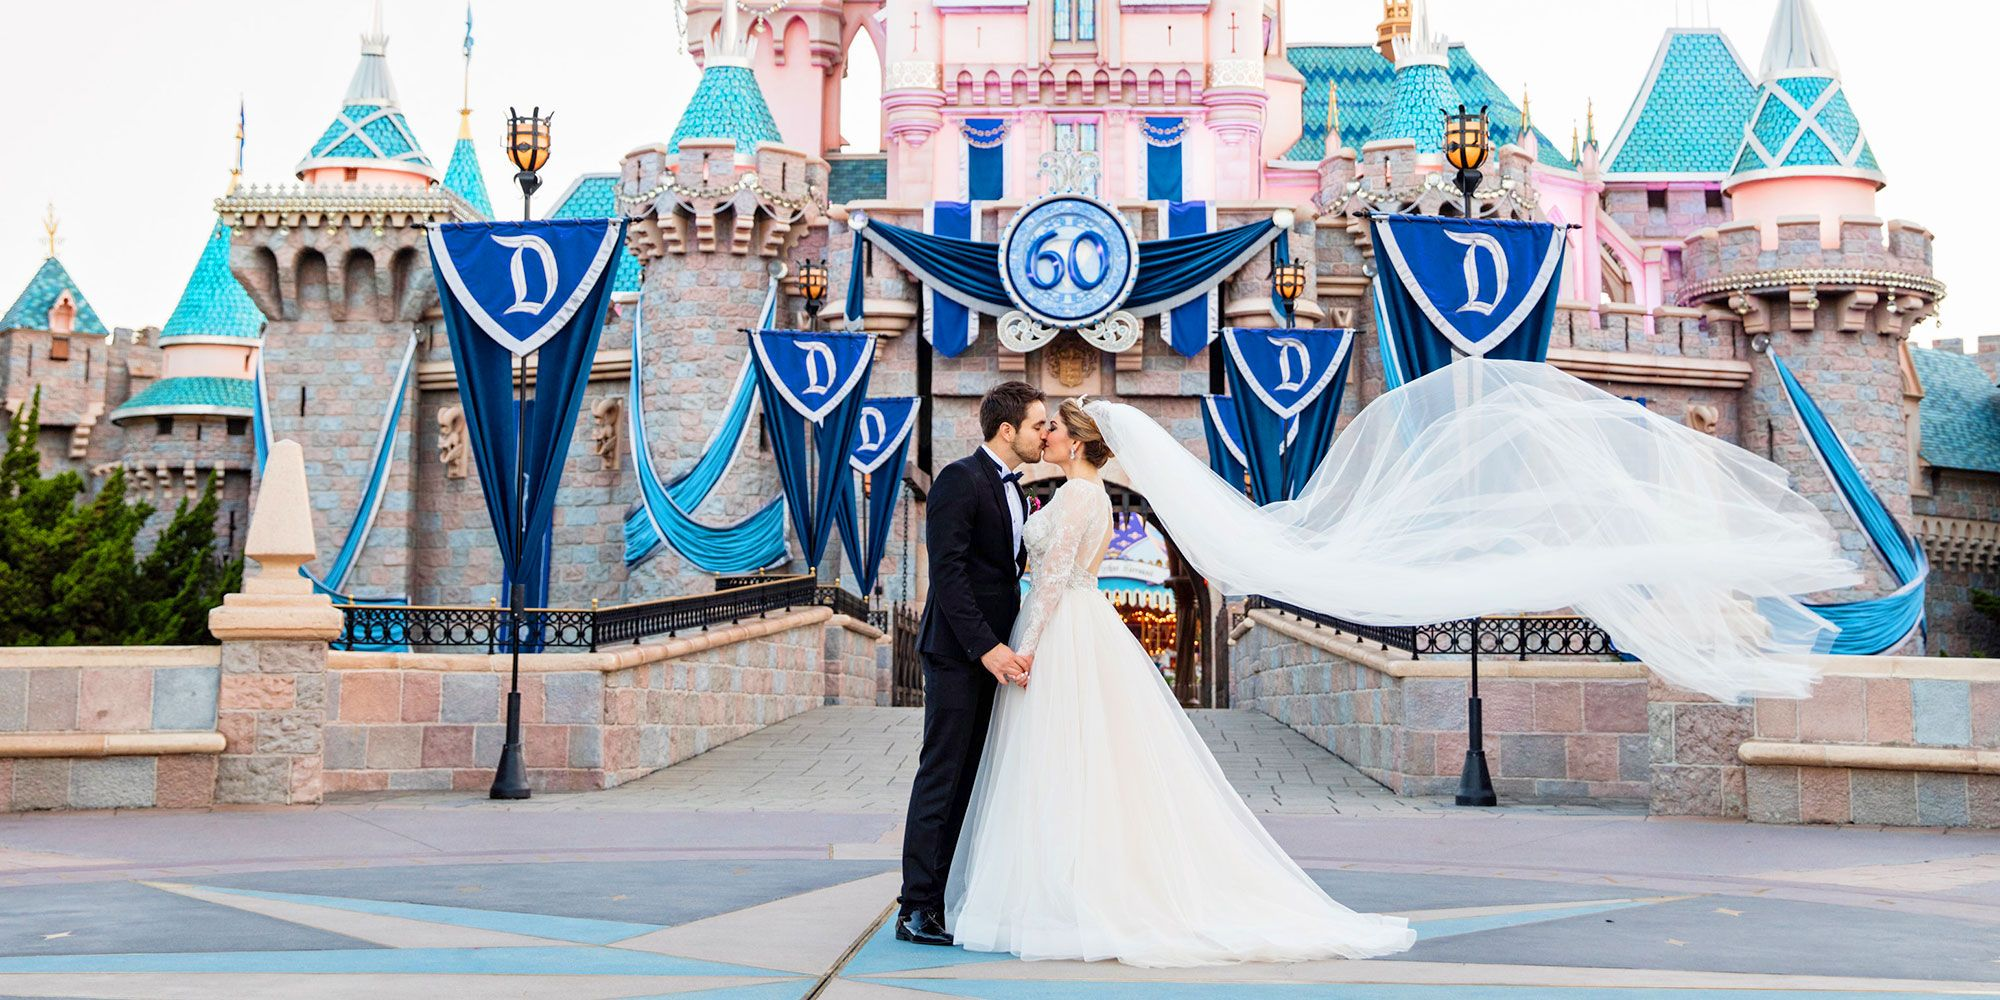 What Its Really Like To Get Married At Disney